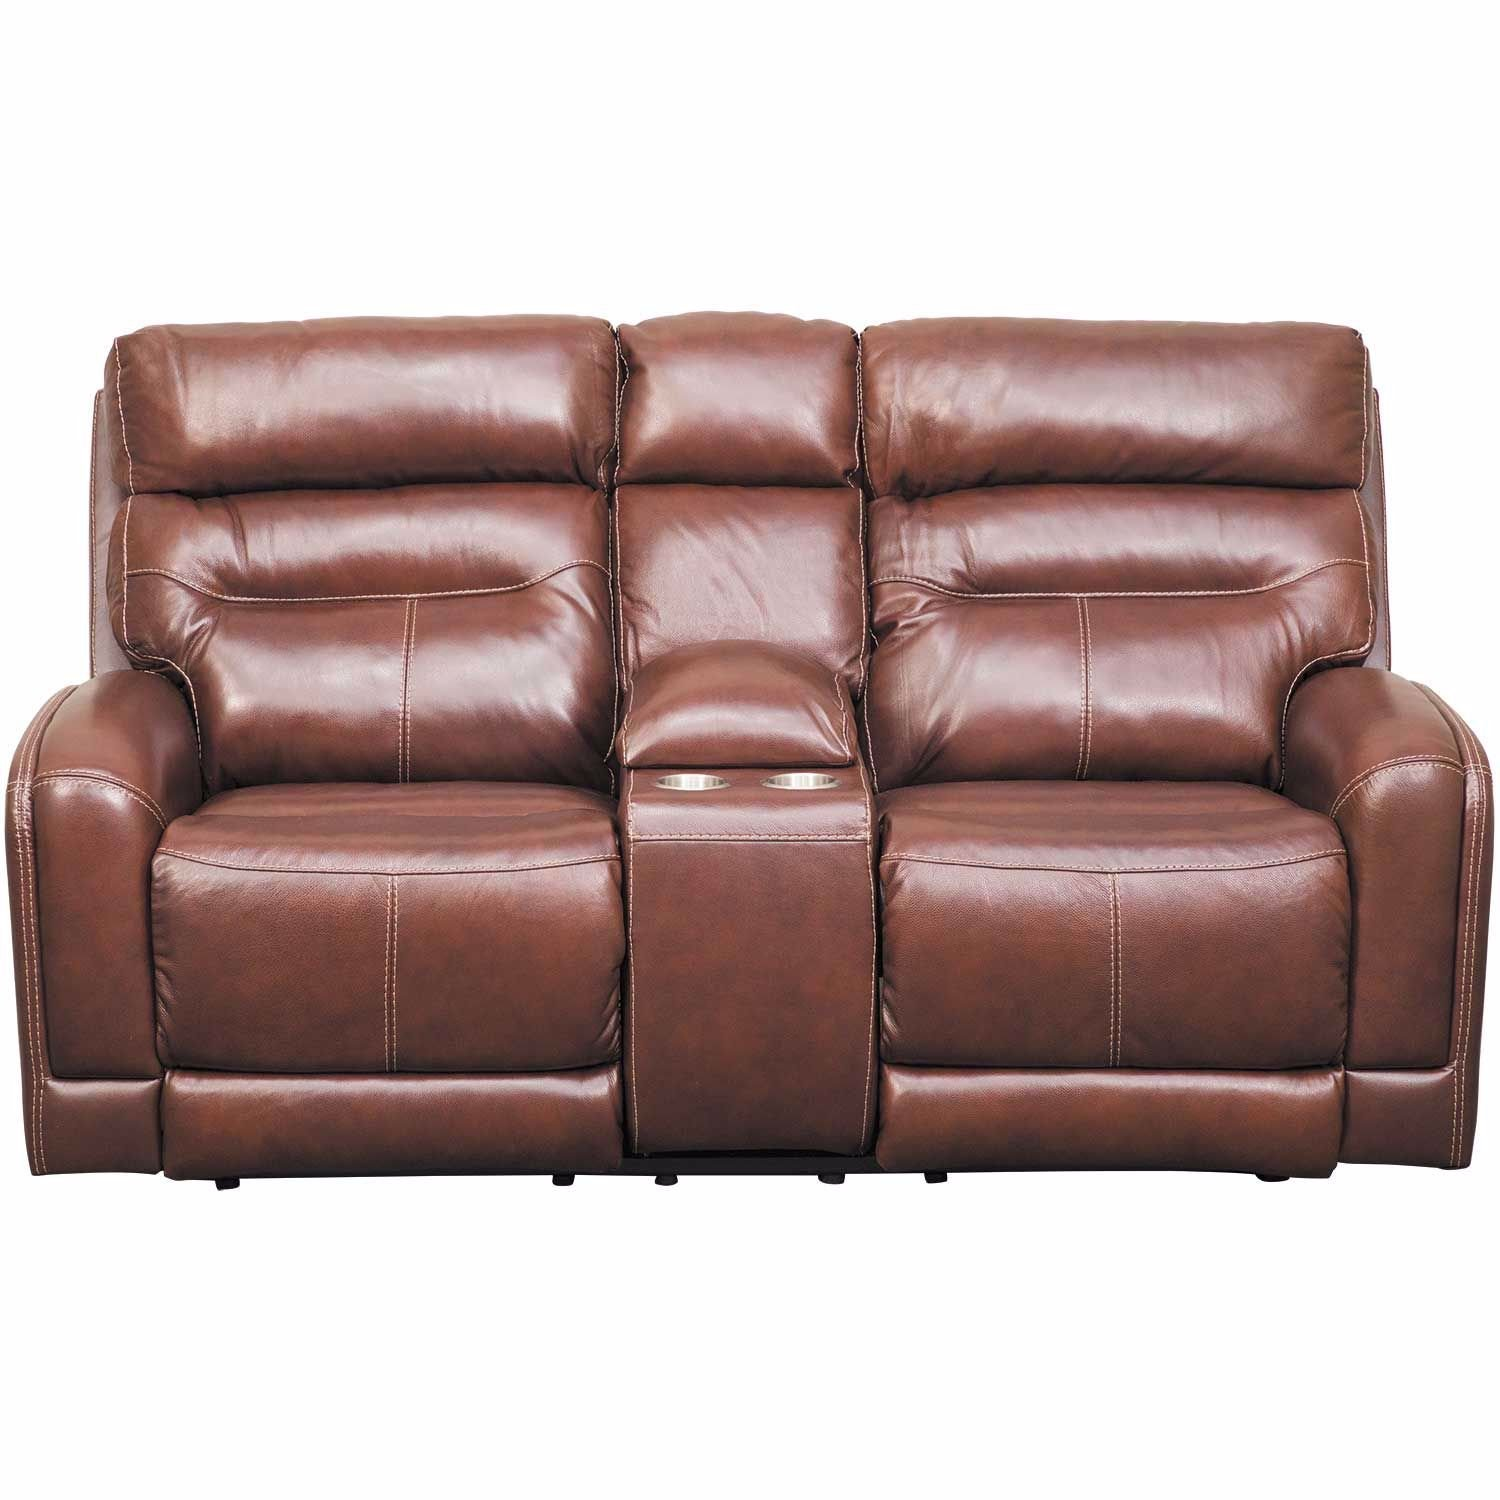 Wondrous Sessom Leather Power Reclining Console Loveseat With Adjustable Headrest And Lumbar Ibusinesslaw Wood Chair Design Ideas Ibusinesslaworg